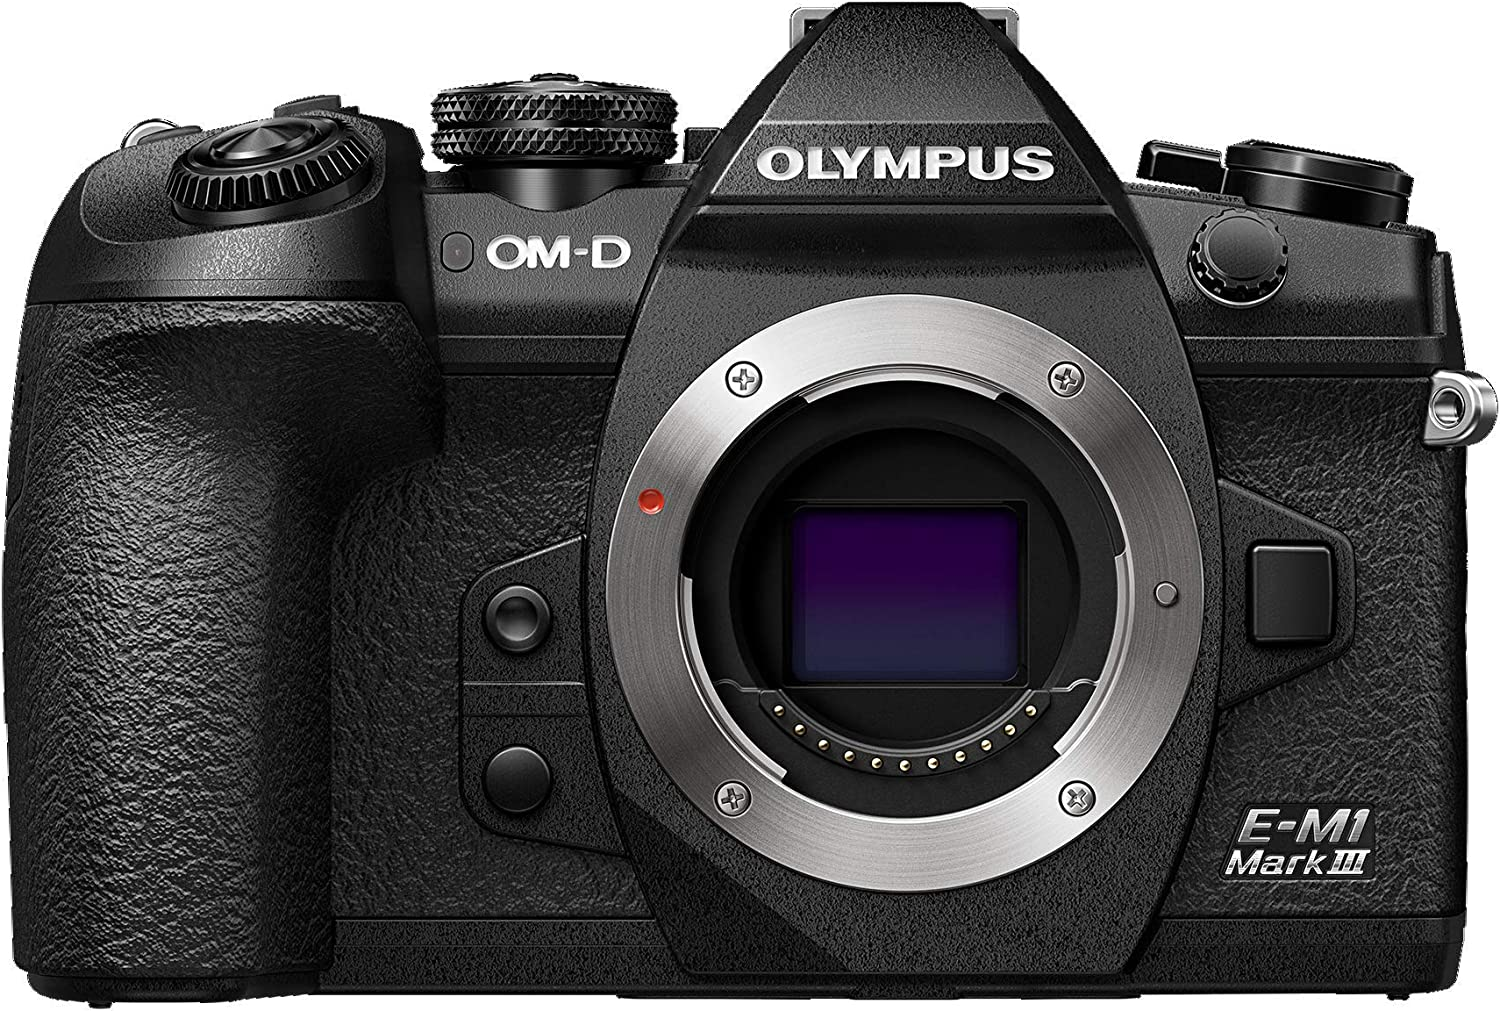 Amazon Opens Pre-Orders For Olympus OM-D E-M1 Mark III Camera